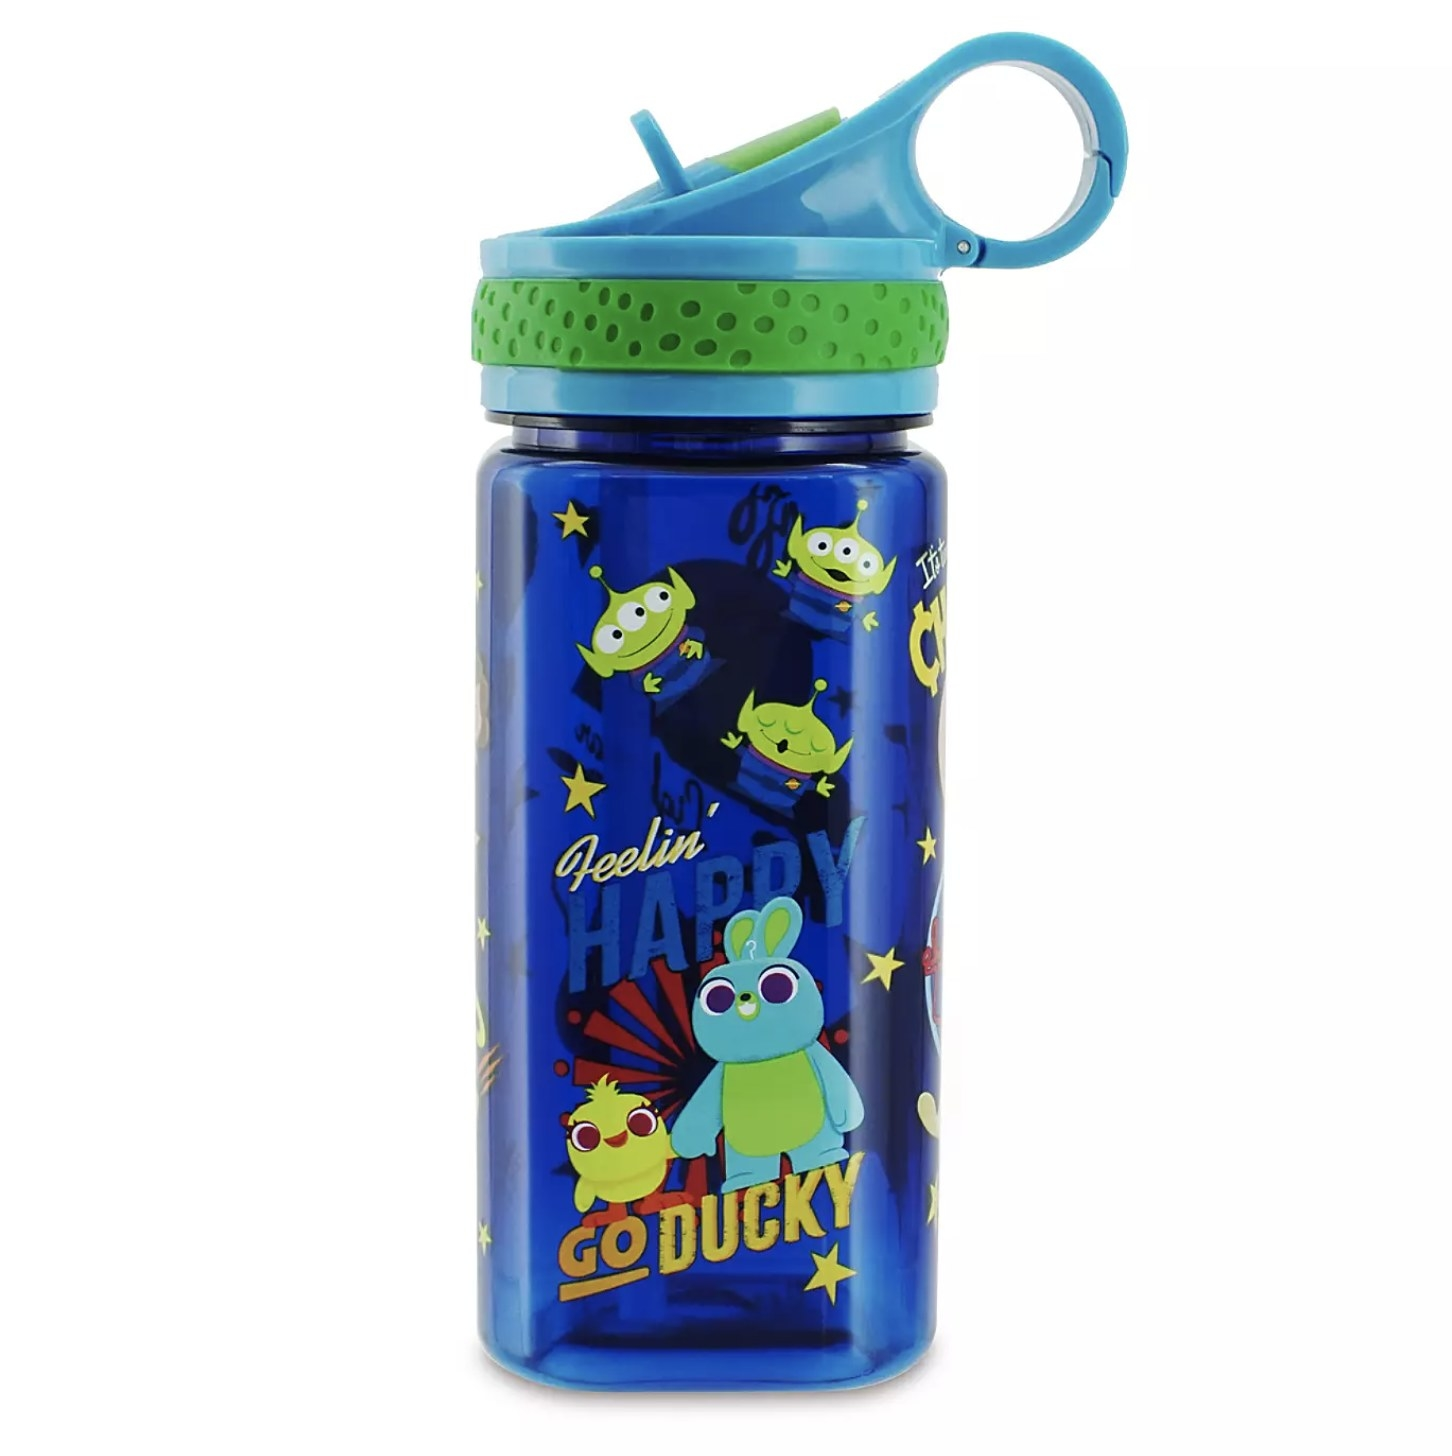 The blue water bottle with Go Ducky on it